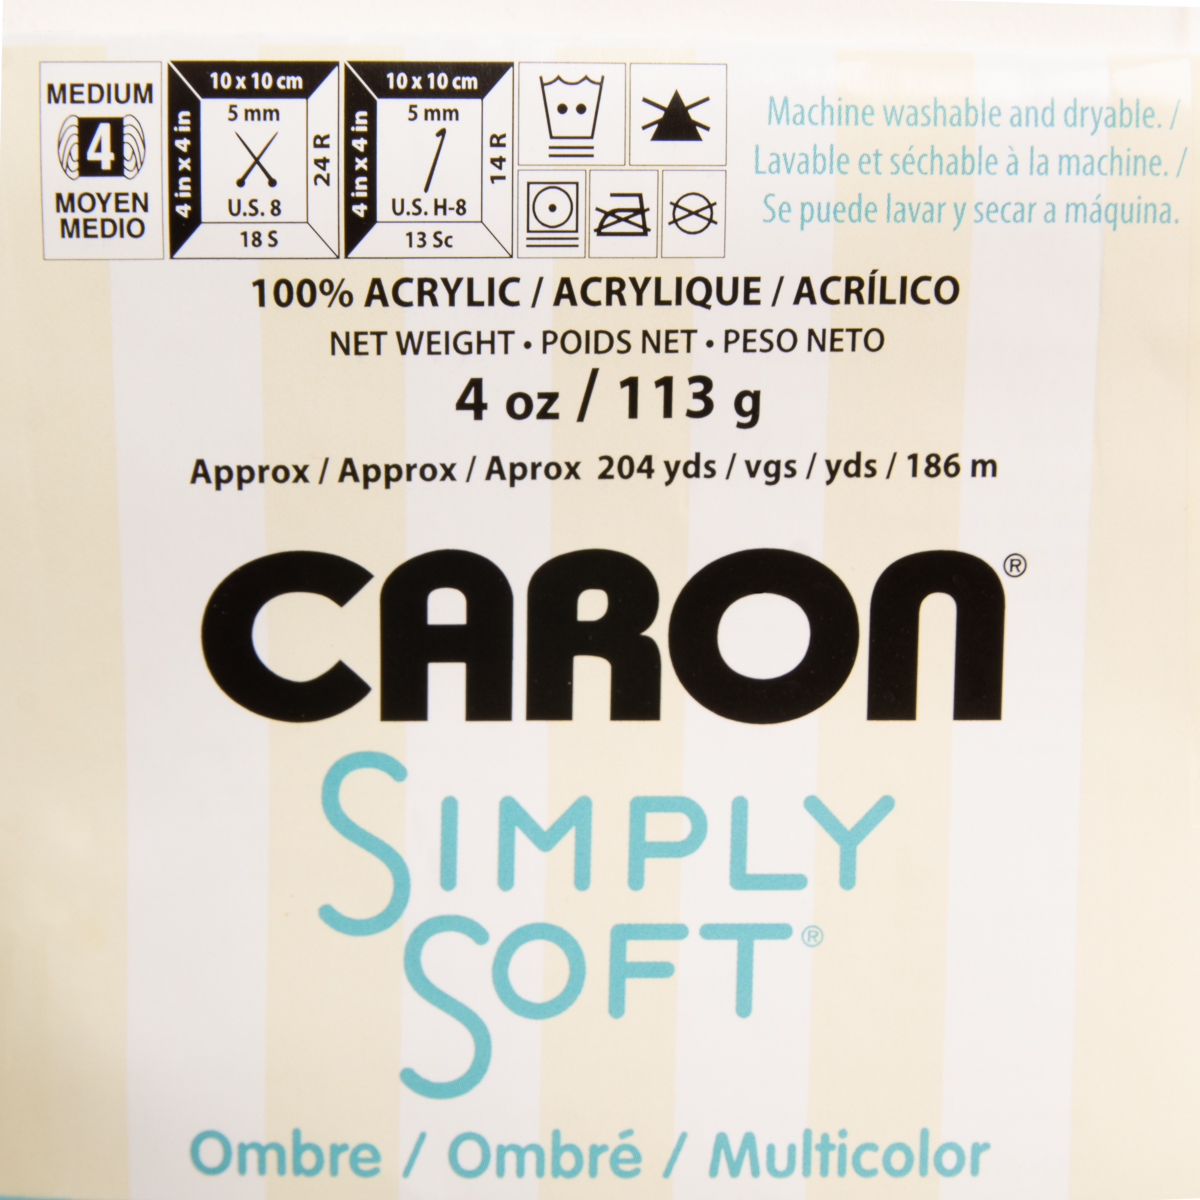 3pk-Caron-Simply-Soft-100-Acrylic-Yarn-Medium-4-Knitting-Crocheting-Skein-Soft thumbnail 14